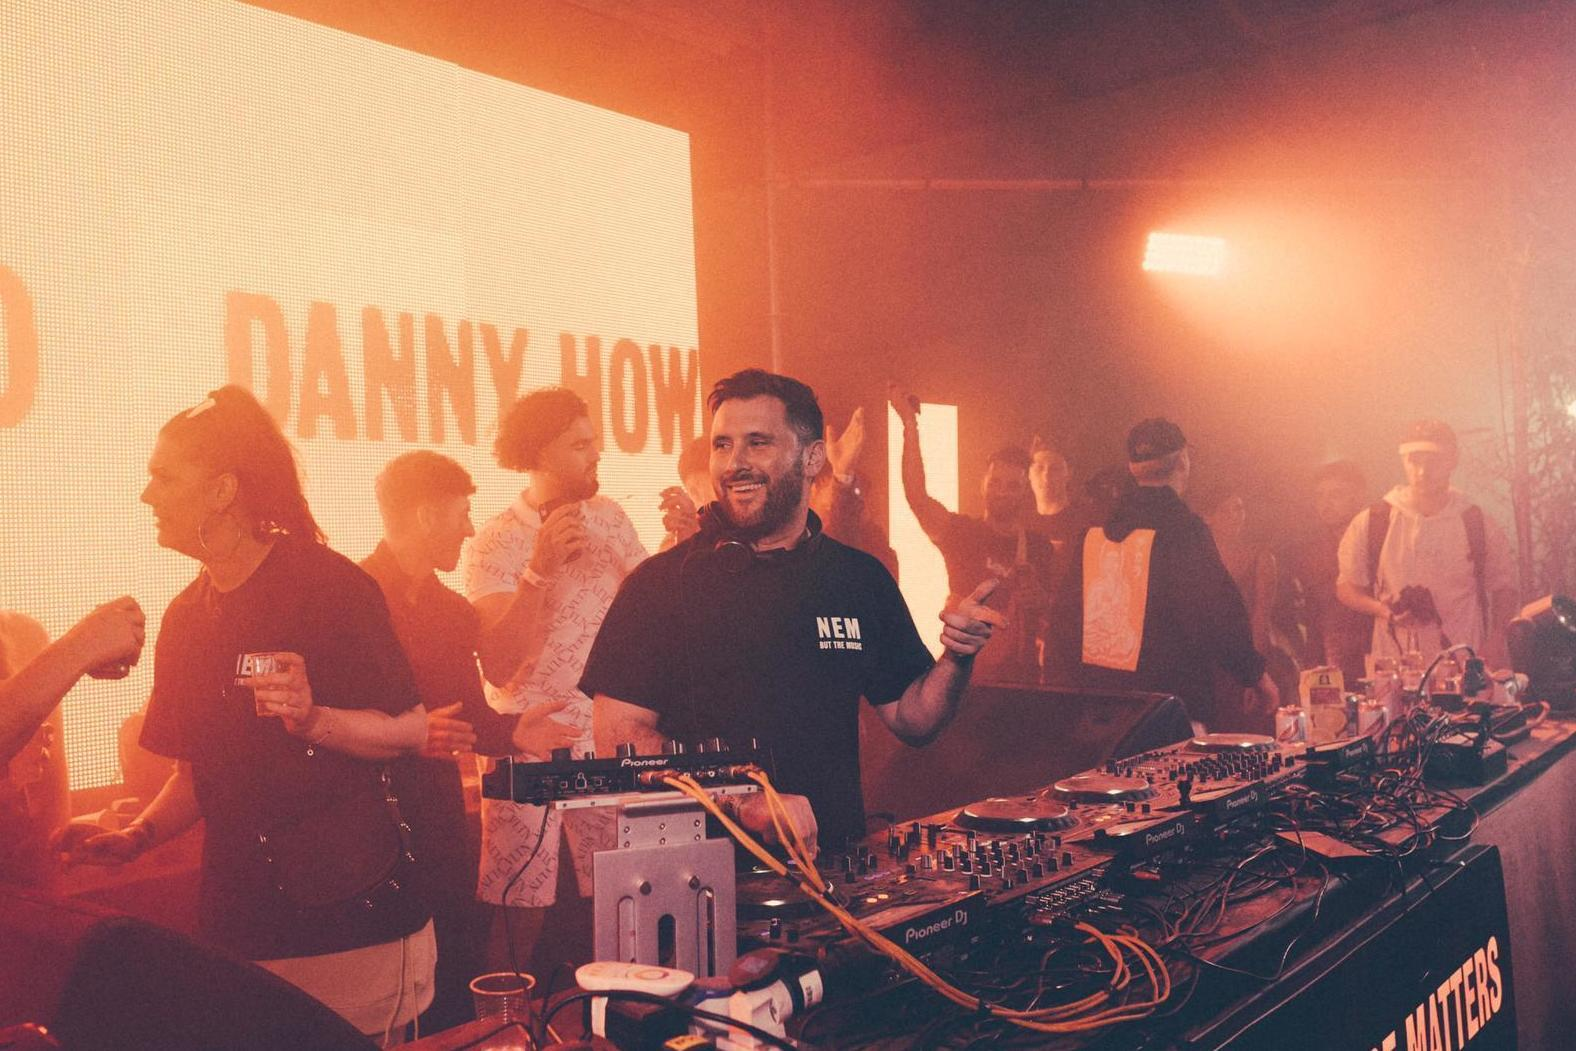 sets-in-the-city:-nothing-else-matters-with-danny-howard